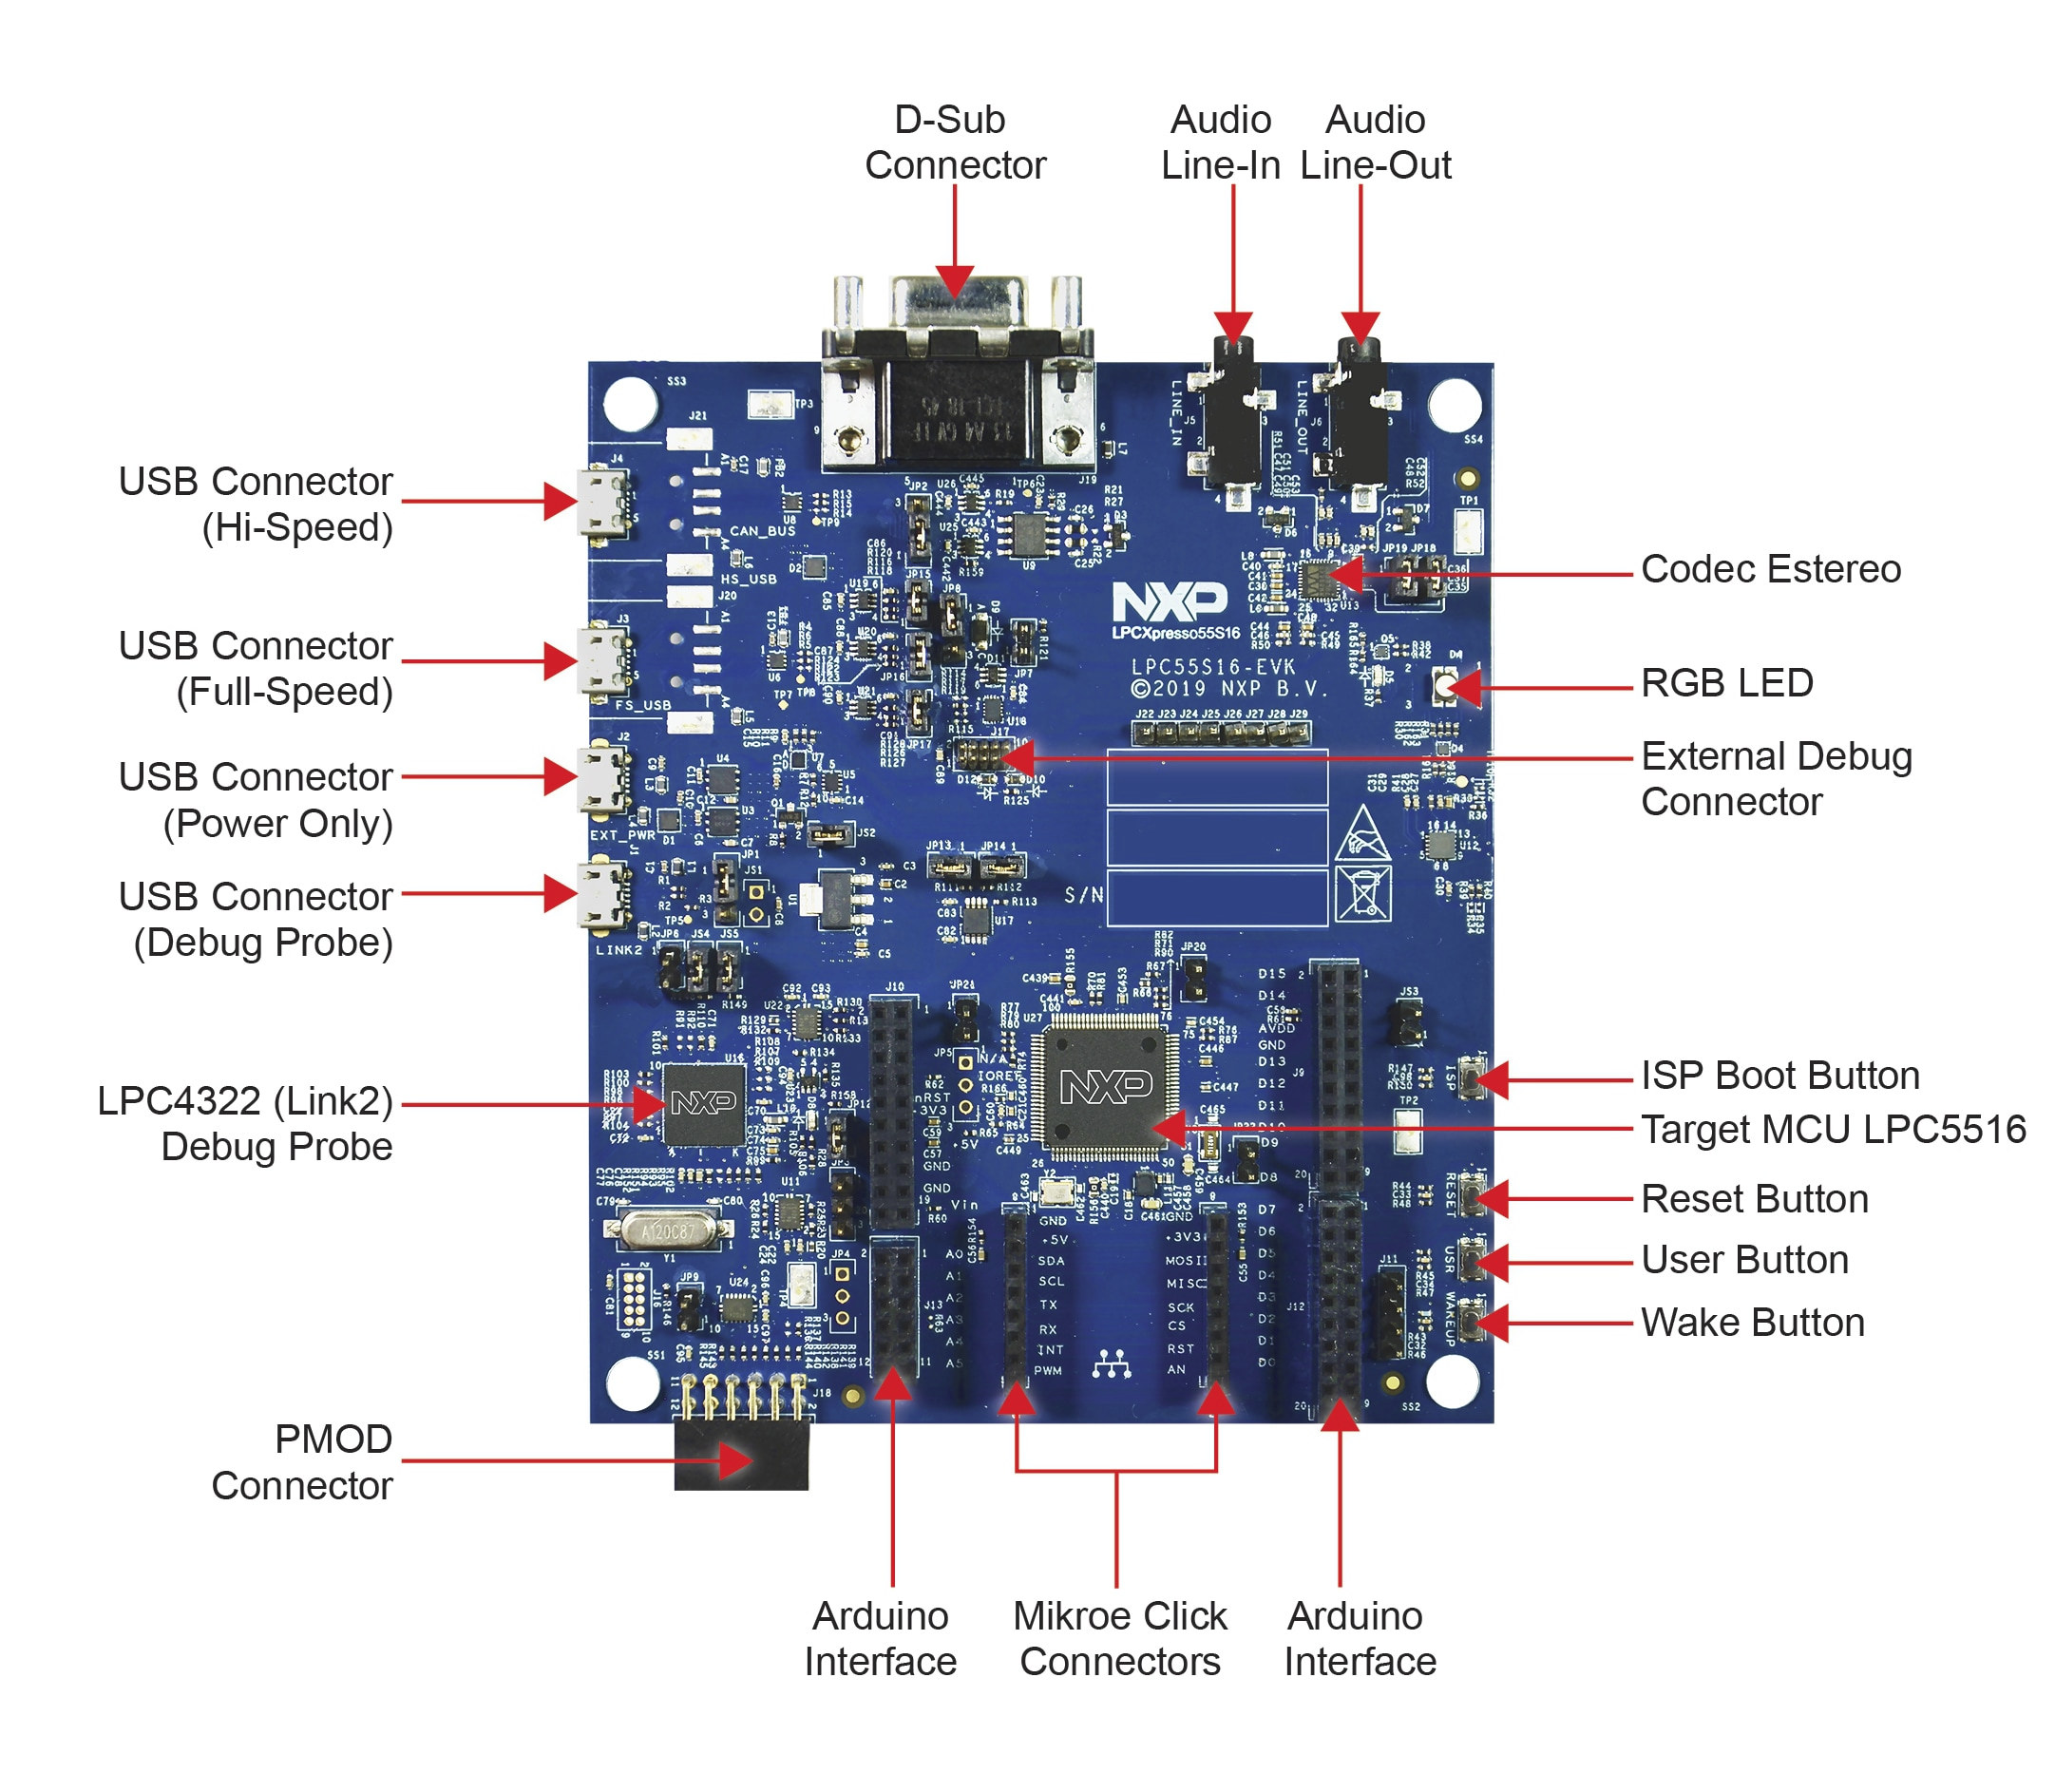 NXP Announces General Availability of the Arm Cortex-M33-based LPC551x/S1x MCU Family